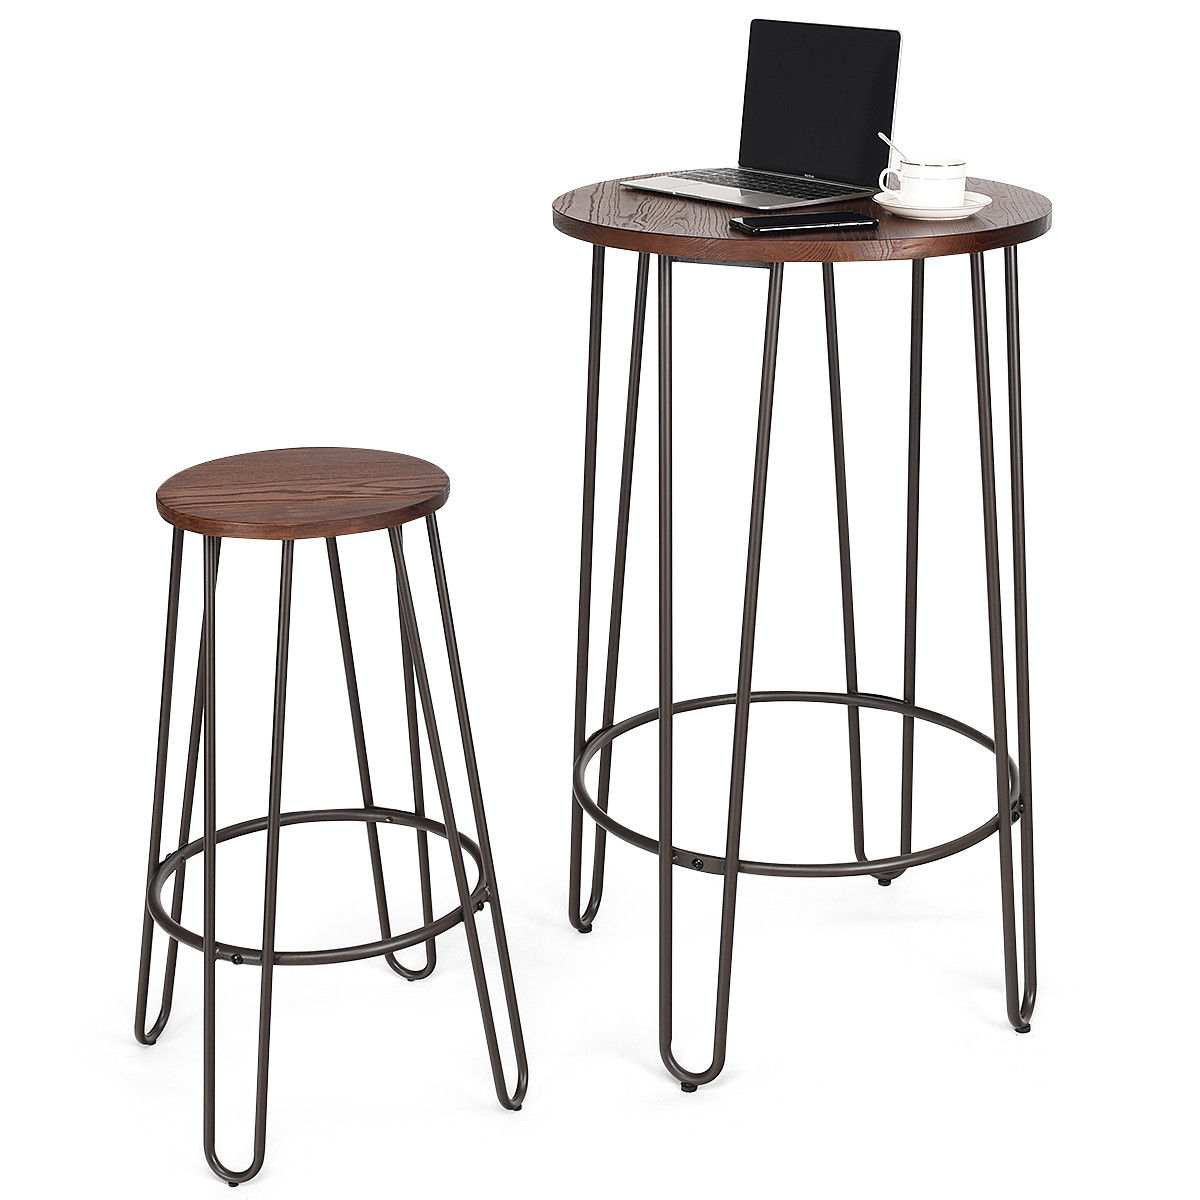 Bar Table With Chairs Gymax 3pc Pub Set Bar Wood Round Table Height Counter Chairs Bistro Stool Furniture